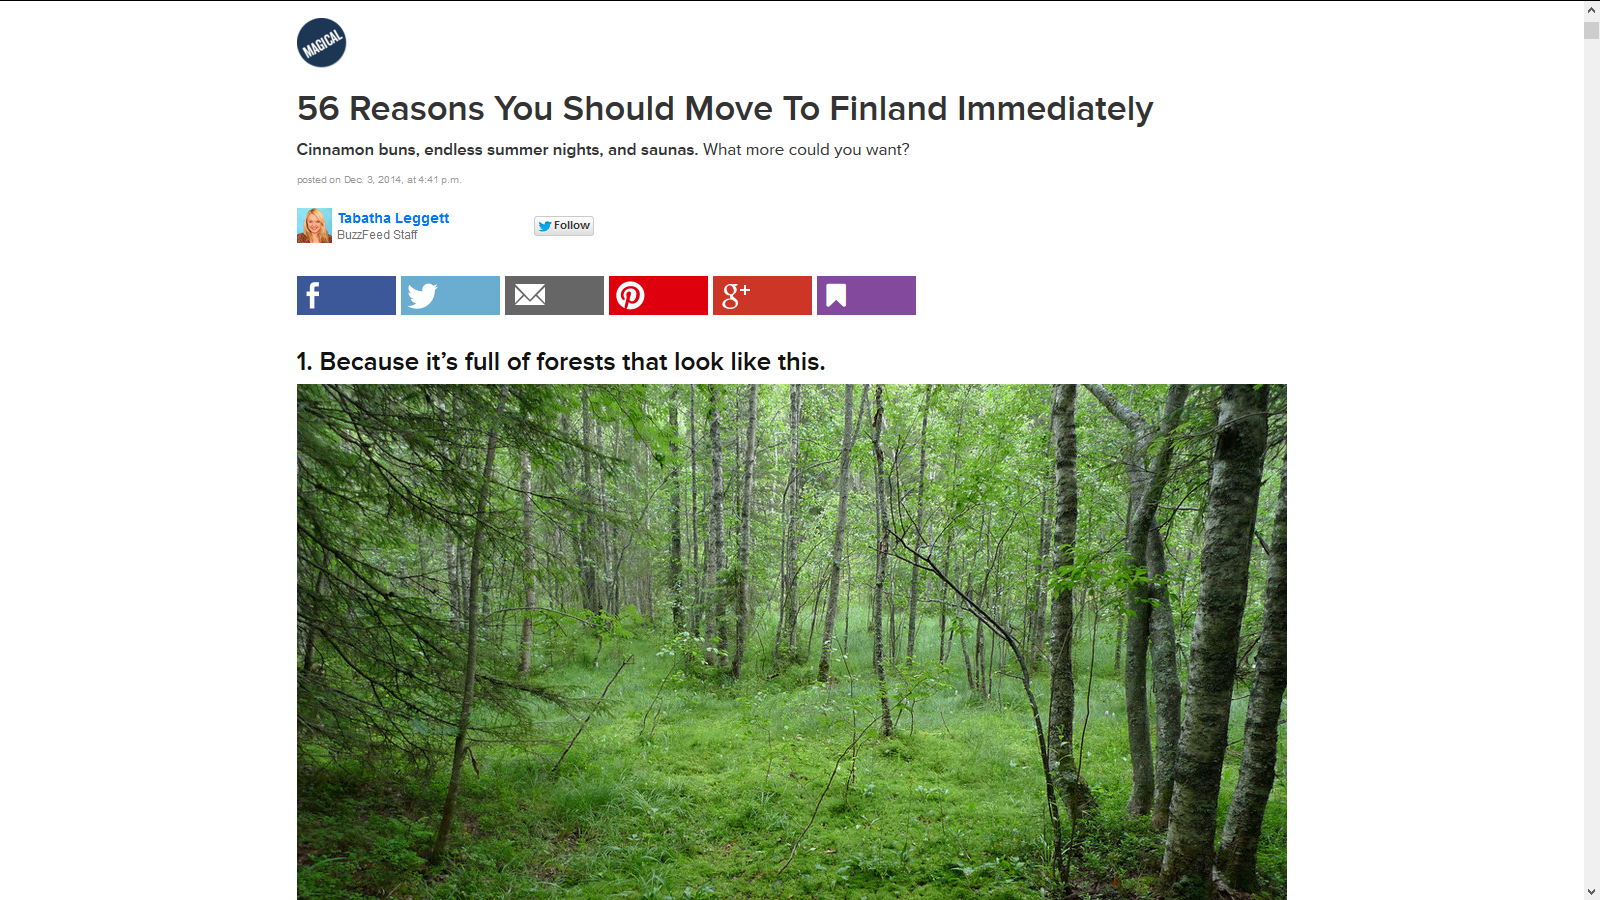 http://www.buzzfeed.com/tabathaleggett/reasons-you-should-never-leave-finland